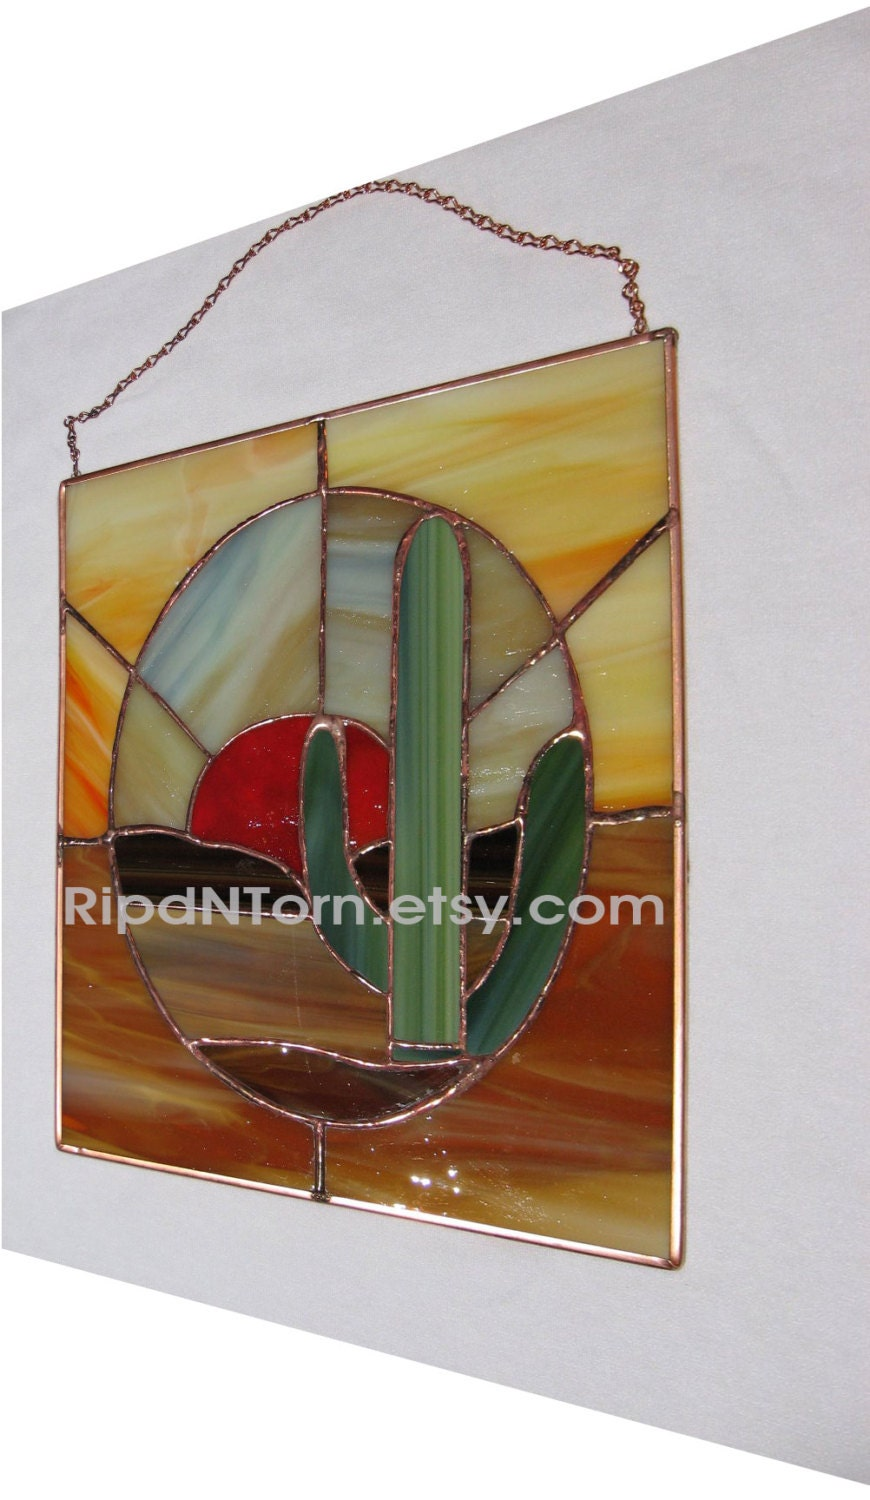 Items similar to Cactus Western Desert Stained Glass ...